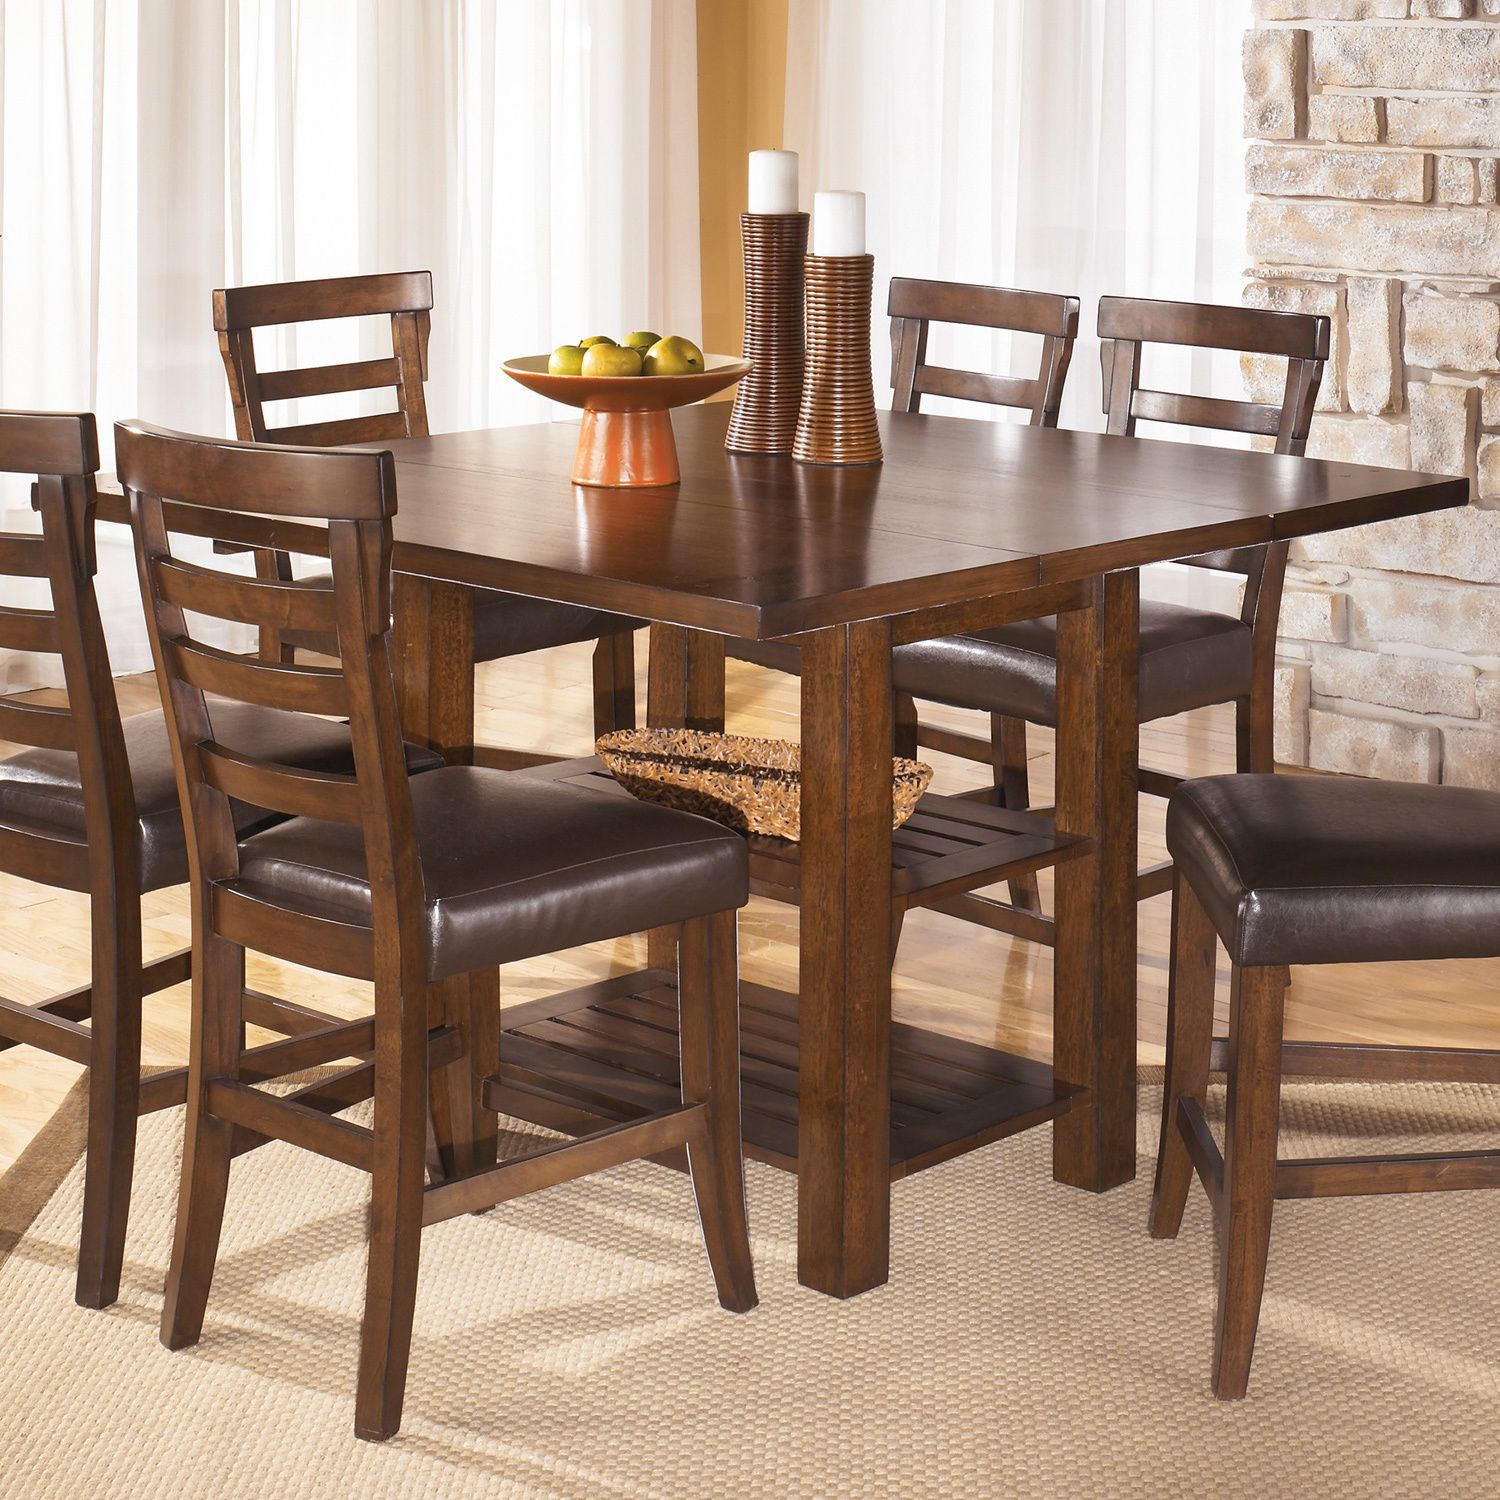 This Handsome Pinderton Counter Height Square Dining Table